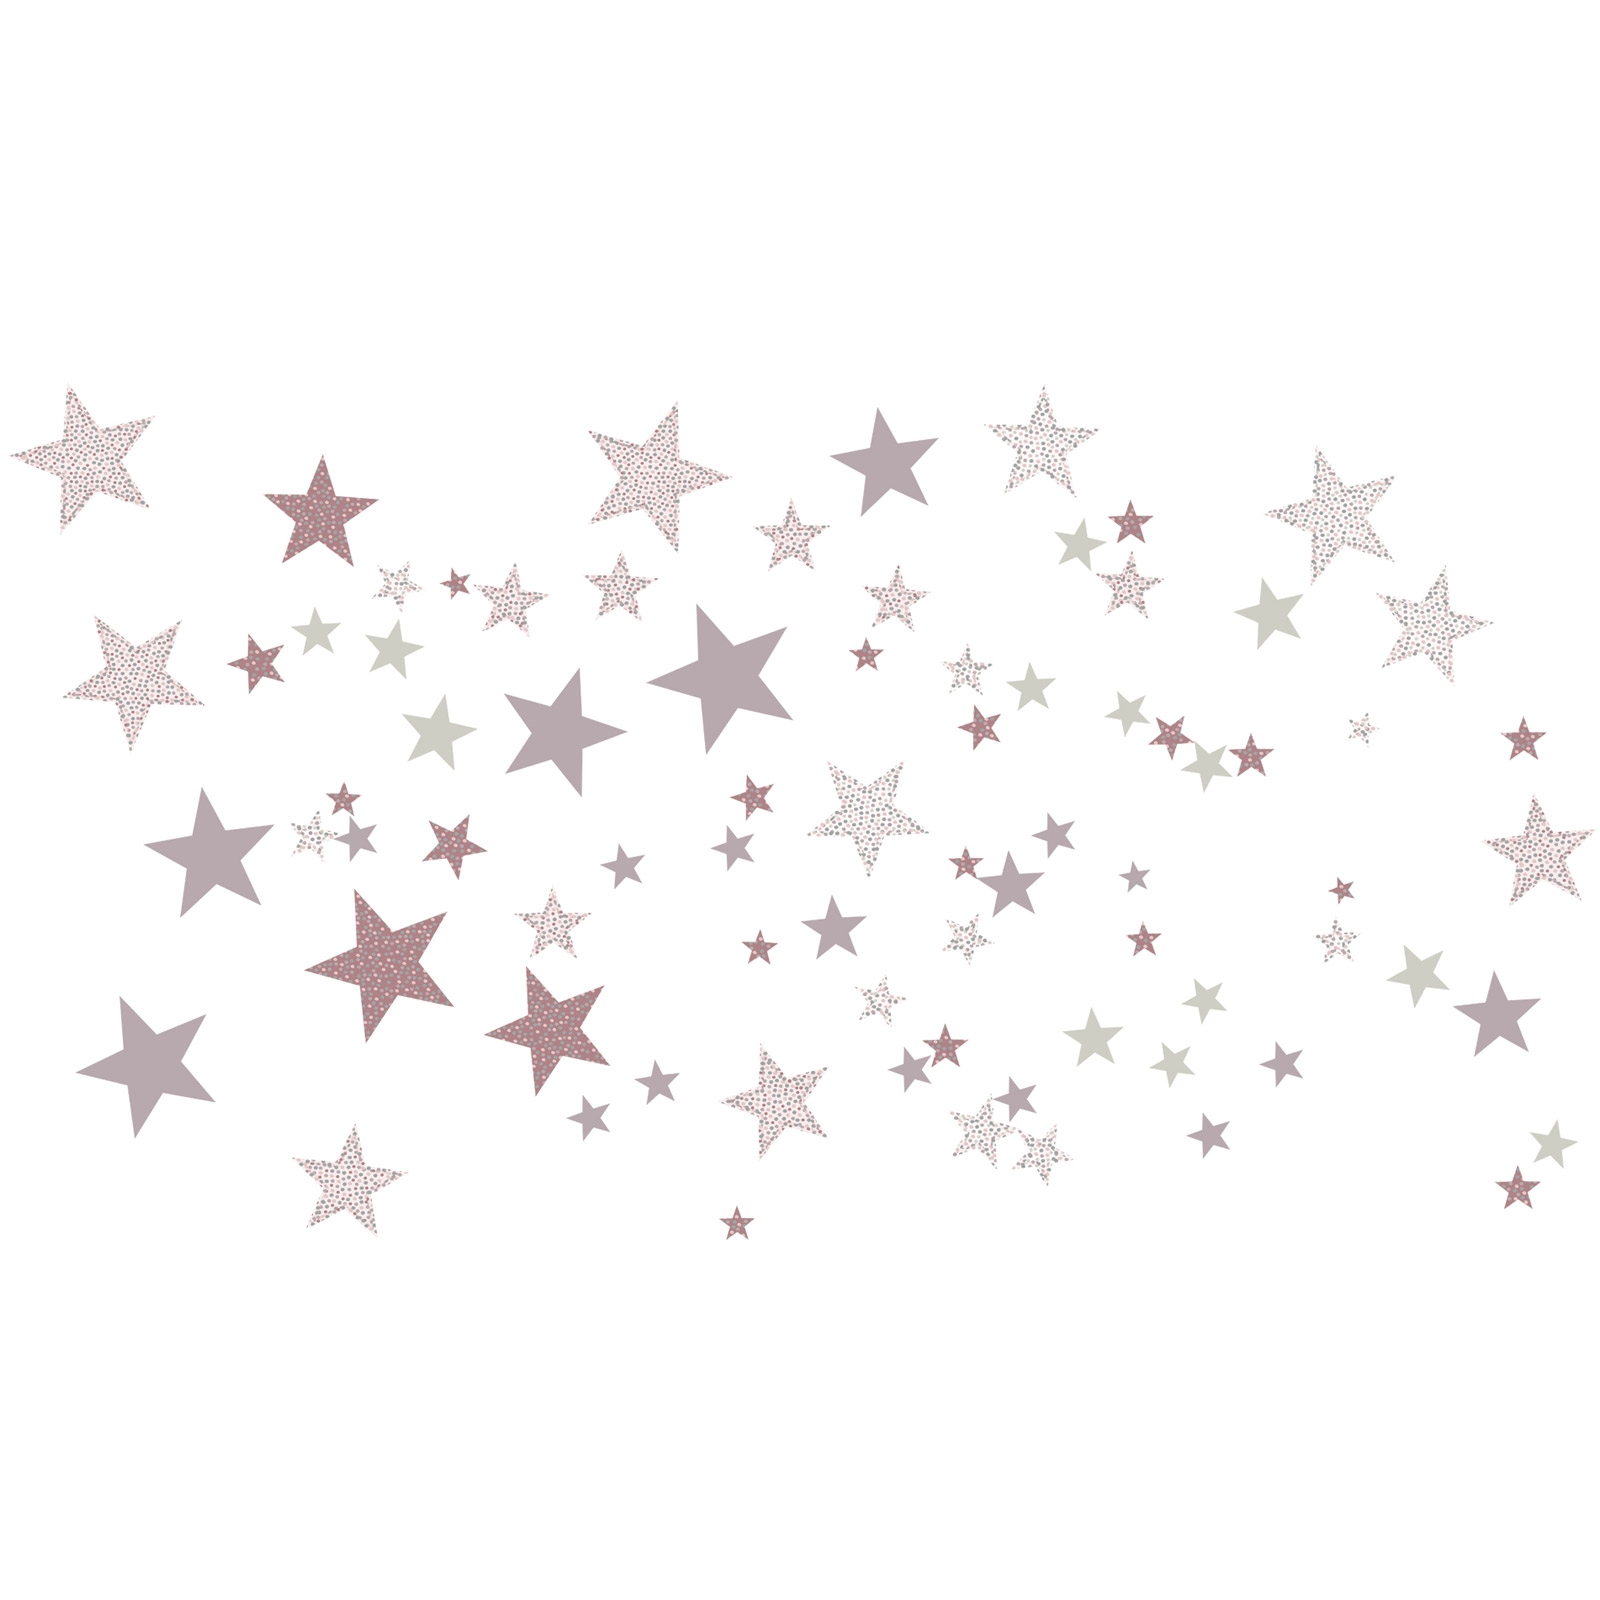 Stickers Etoiles constellation rose : Art for Kids